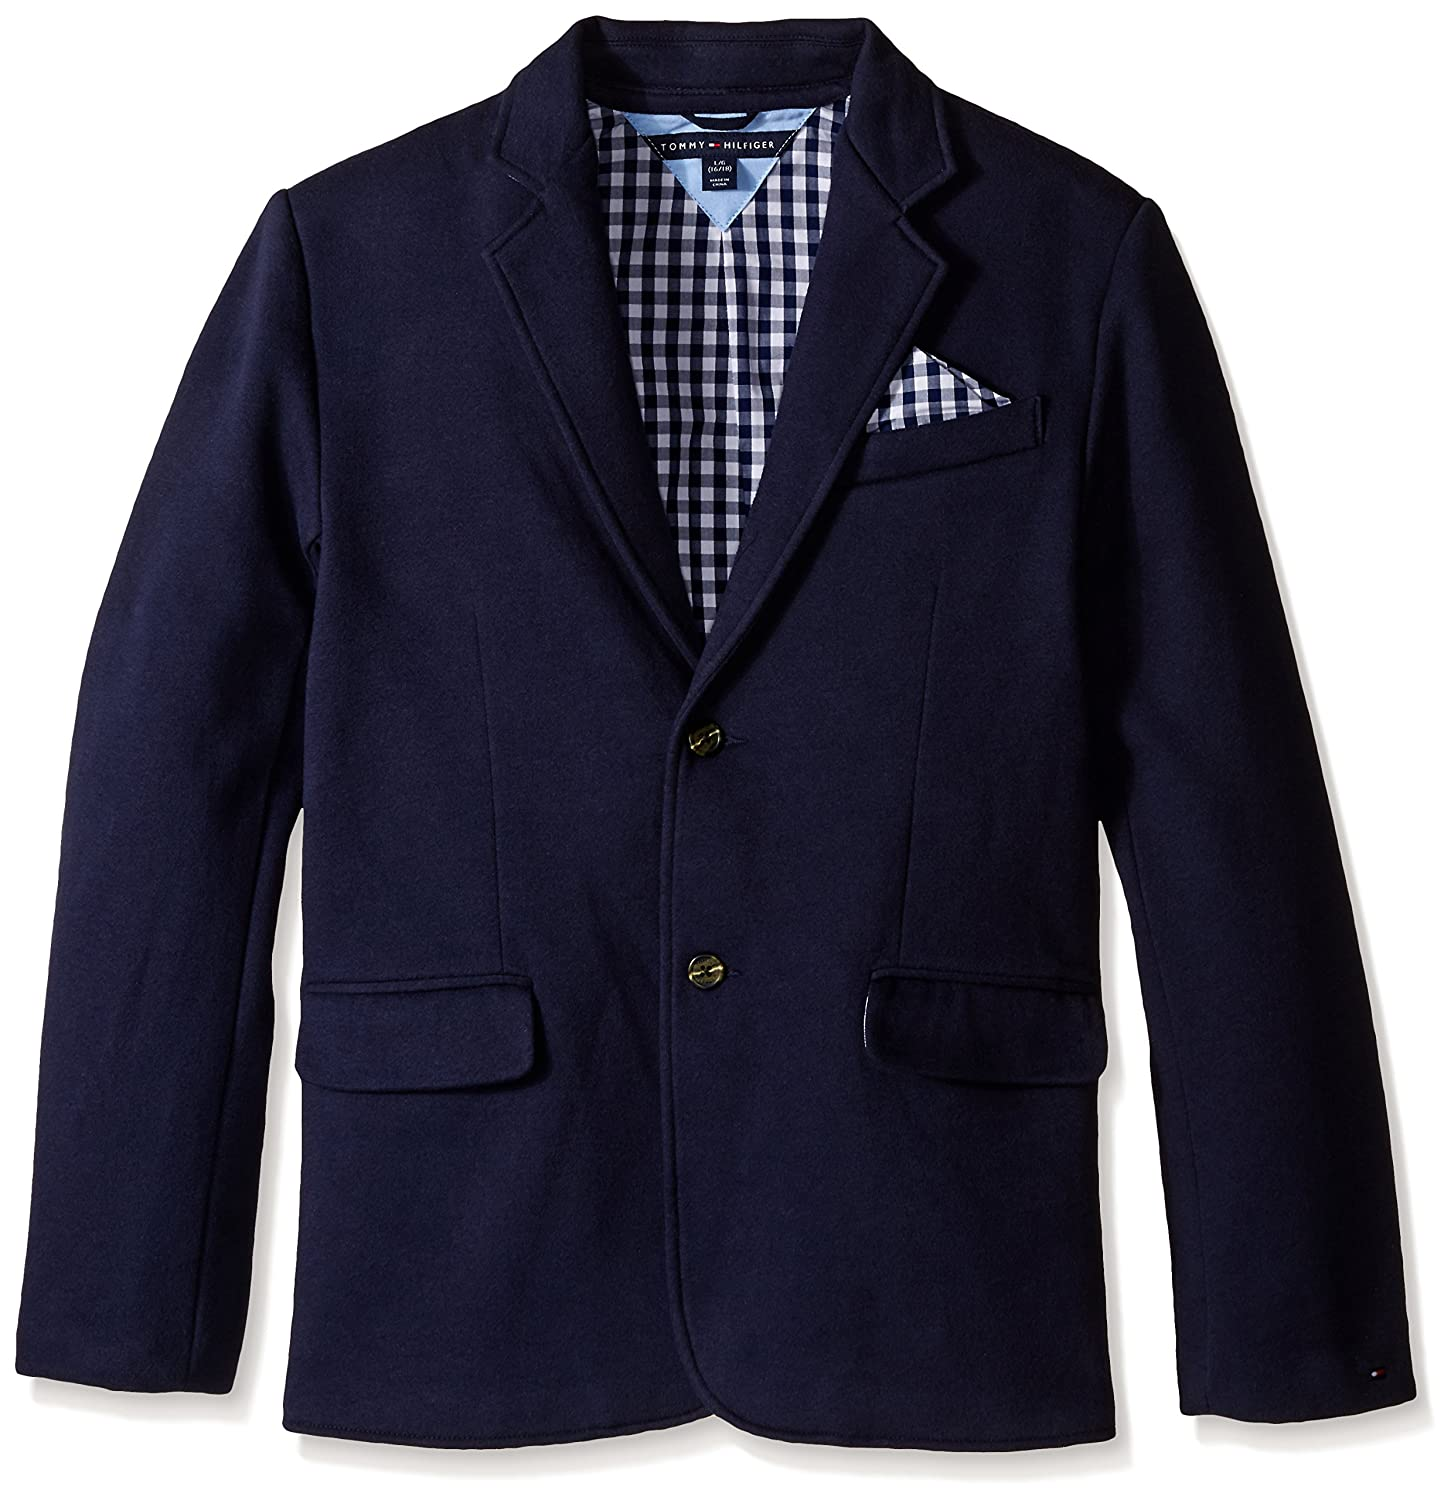 Amazon.com: Tommy Hilfiger Boys' Knit Blazer with Gingham Lining ...